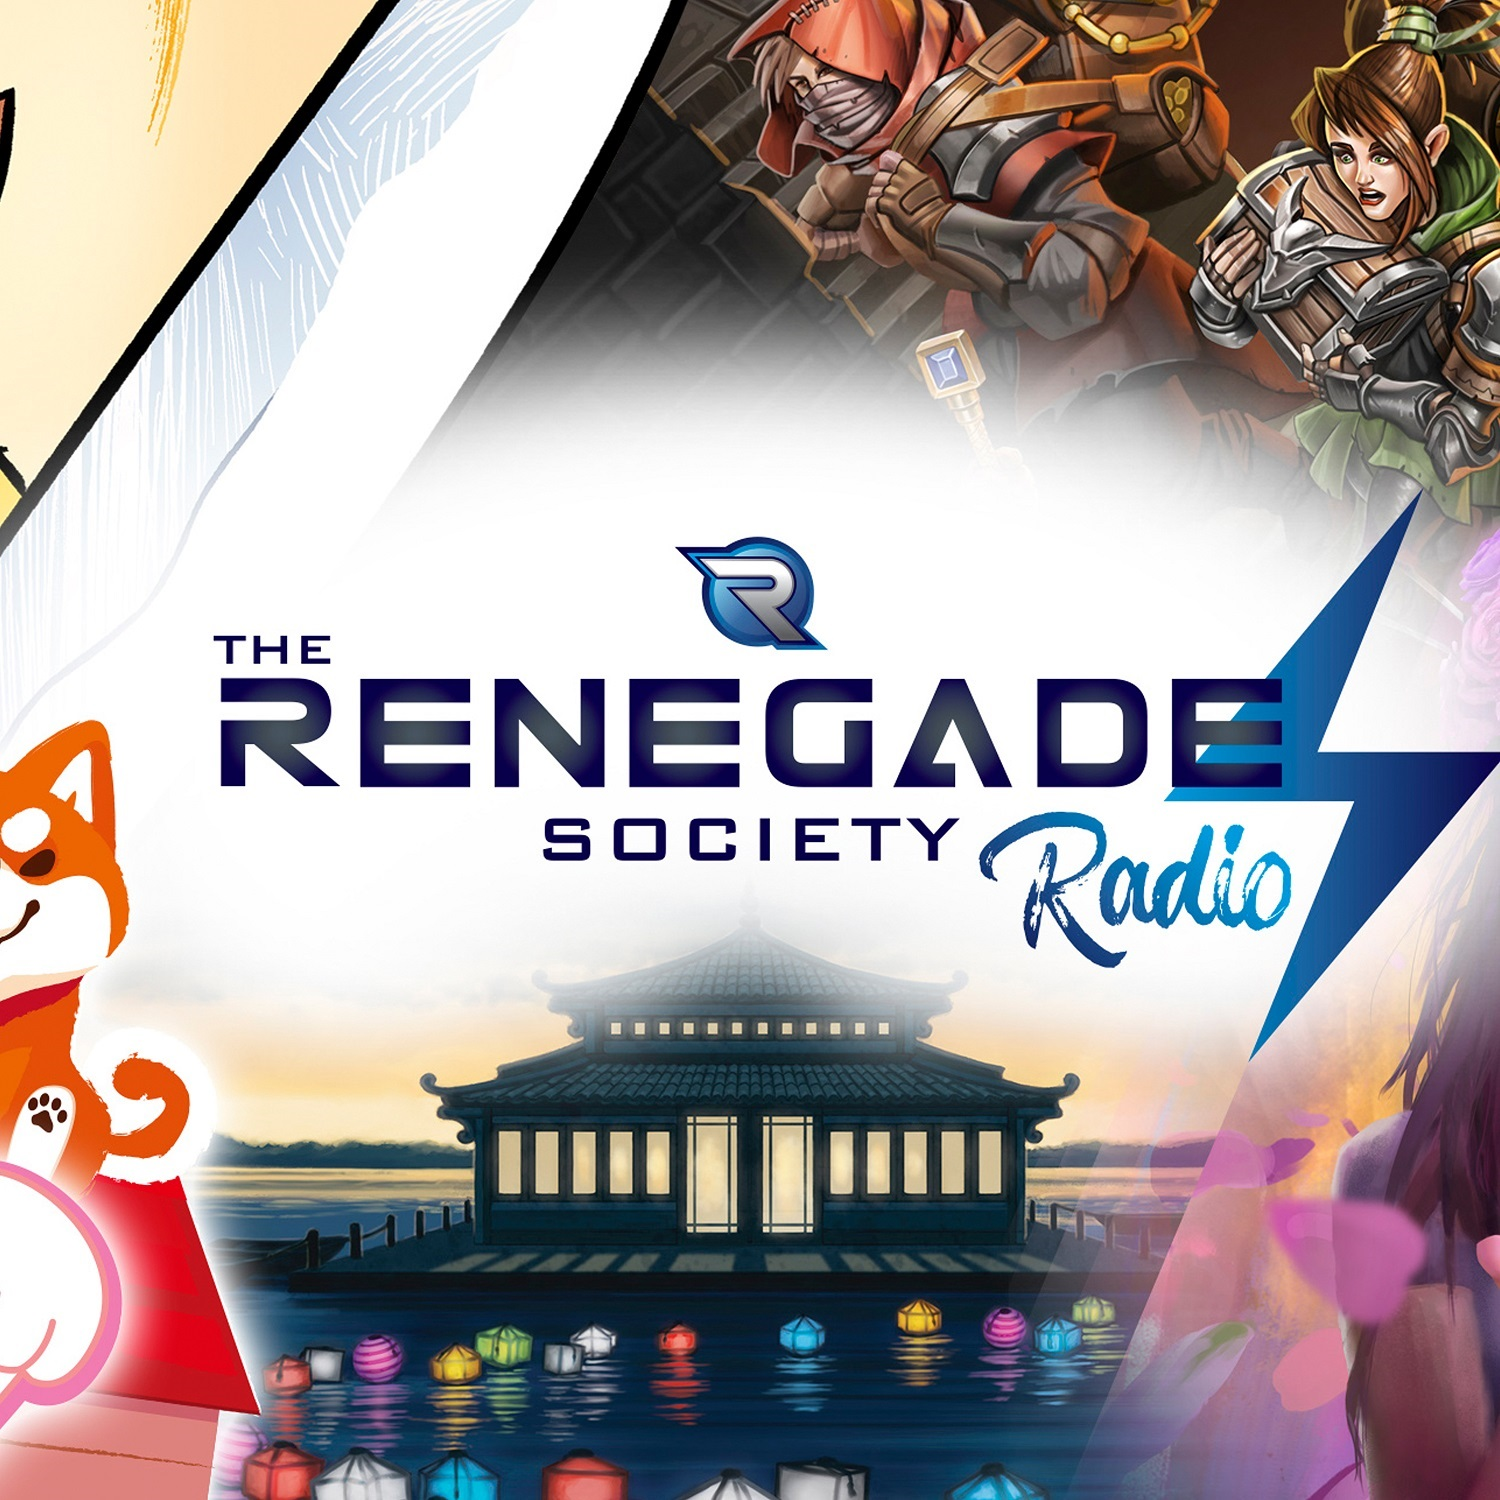 Renegade Society Radio Live with Randy Hoyt from Foxtrot Games!